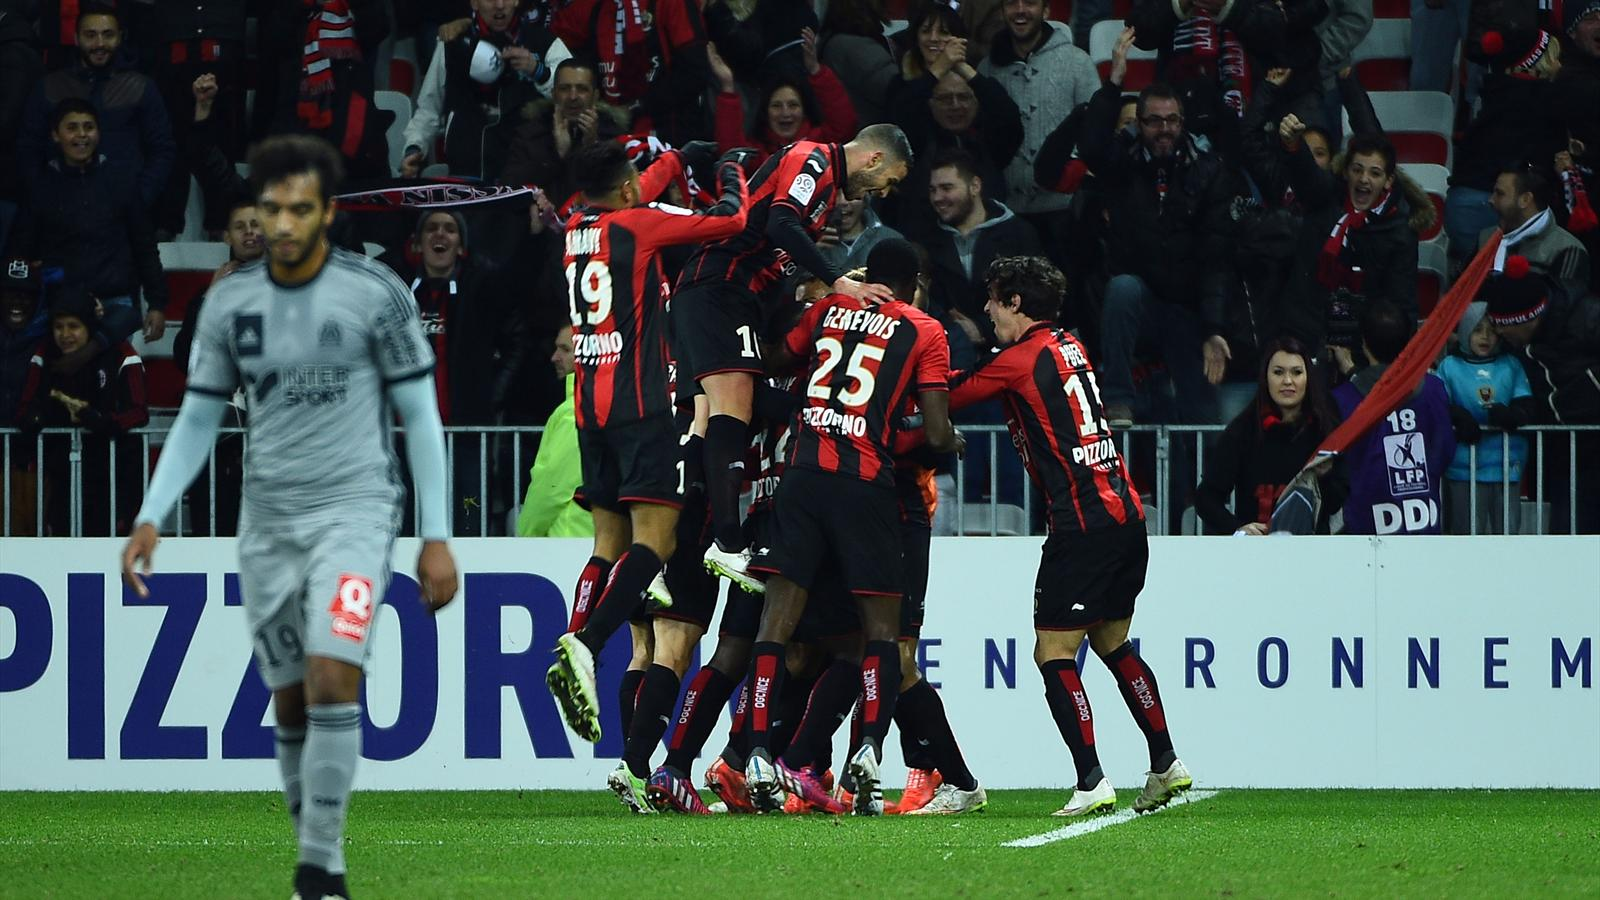 Video: Nice vs Olympique Marseille